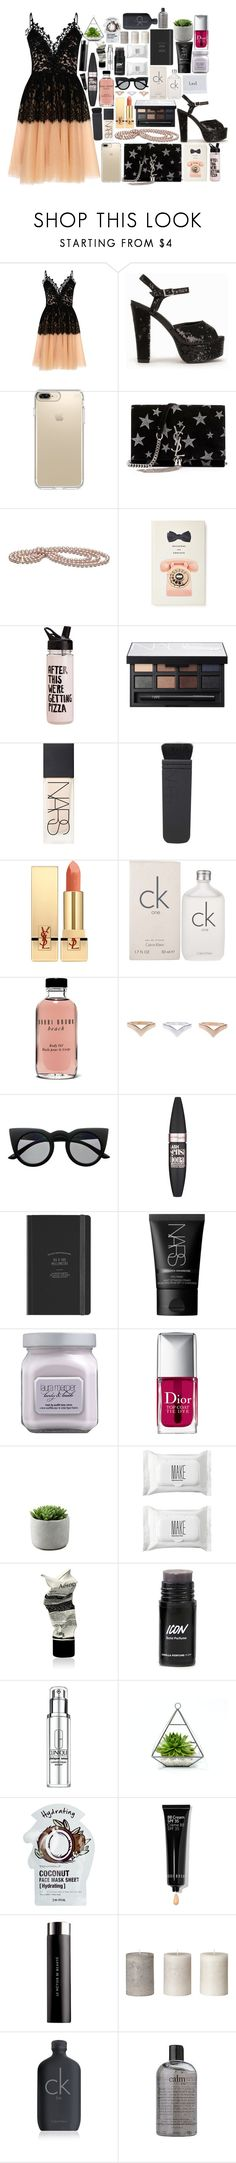 """plla"" by dzchocolatess ❤ liked on Polyvore featuring True Decadence, Nly Shoes, Speck, Yves Saint Laurent, Kate Spade, NARS Cosmetics, Calvin Klein, Bobbi Brown Cosmetics, Retrò and Maybelline"